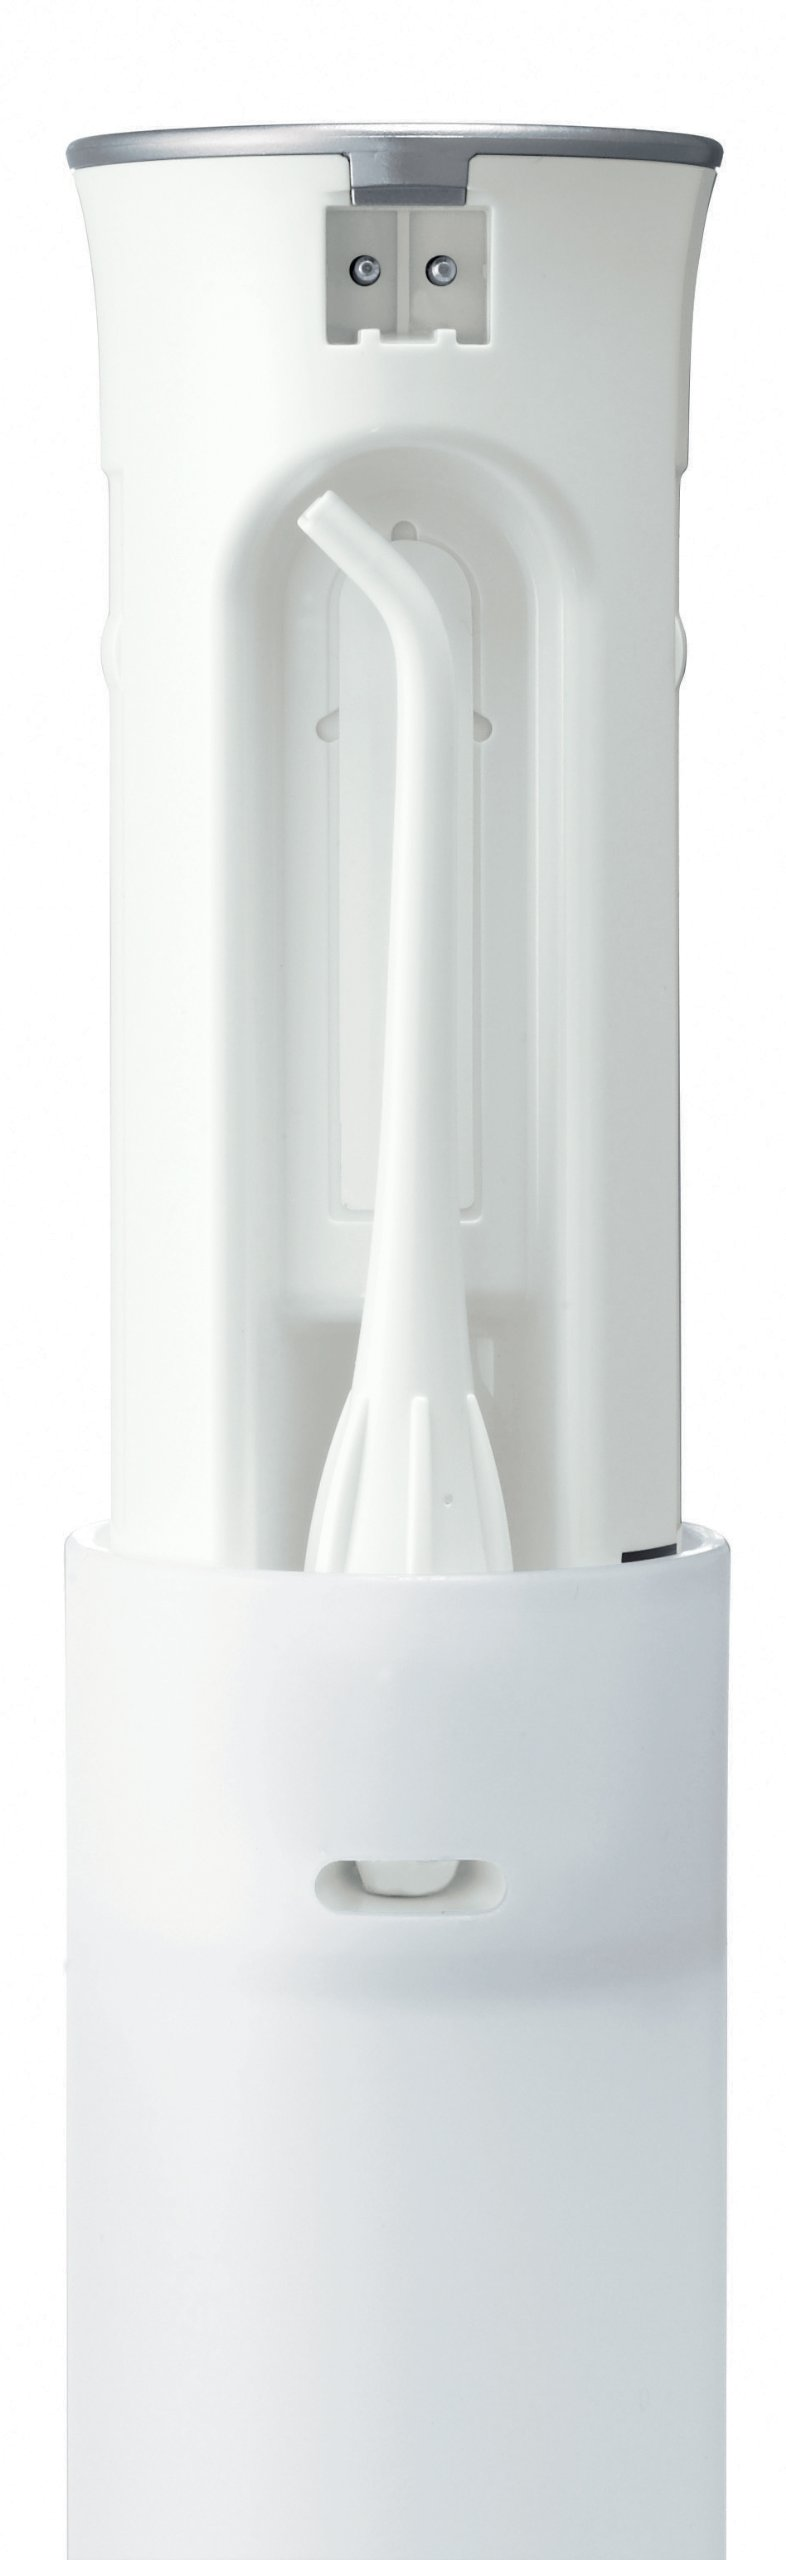 Panasonic EW-DJ40 DentaCare Cordless Rechargeable Oral Irrigator by Panasonic (Image #4)